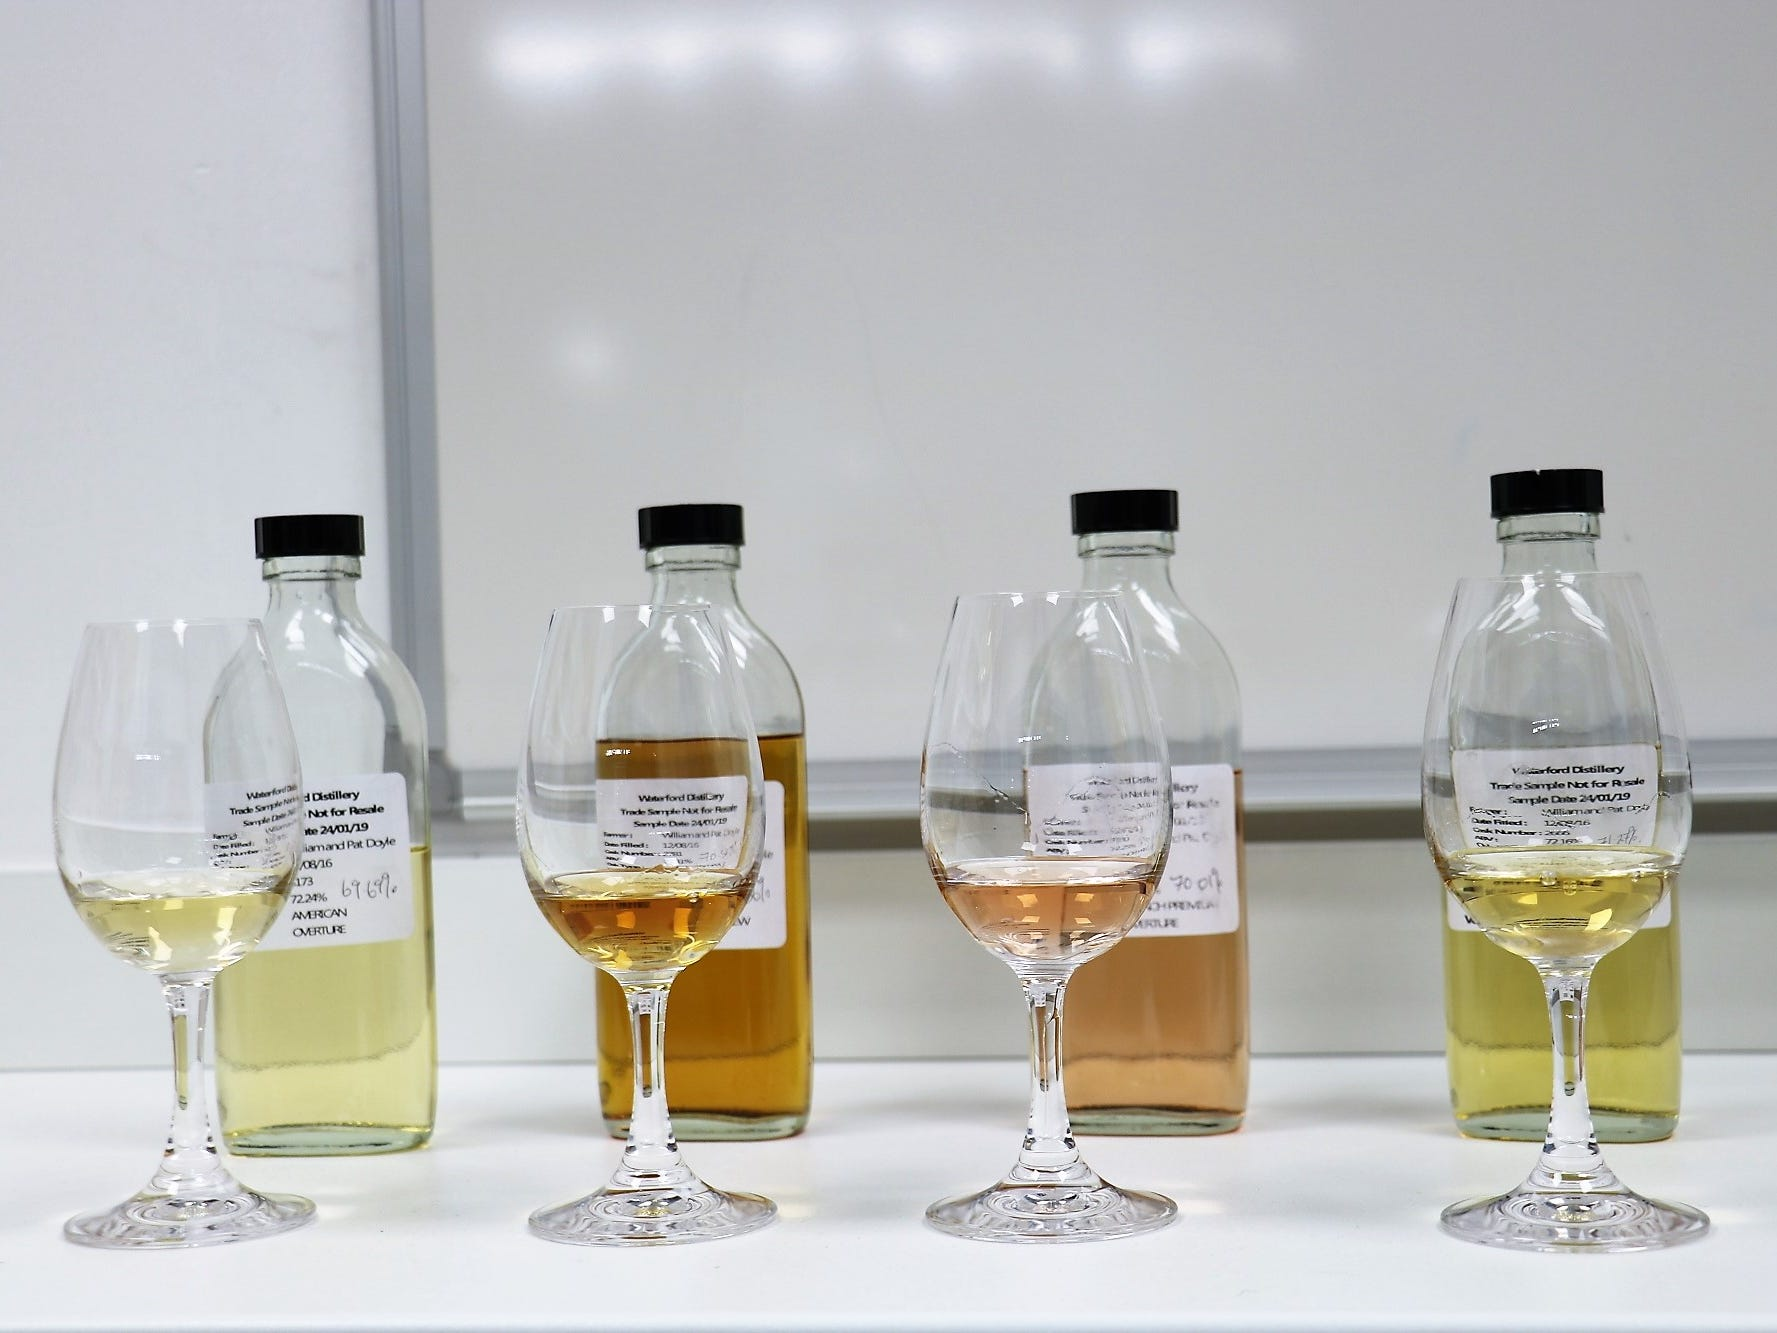 An assortment of samples showcases a range of colors stemming from different barrel types. Premium French casks which held red wine offer the unique rose color of the whiskey seen second from right. The distillery has experimented with different types of wood, including chestnut, wild cherry, acacia and mulberry.